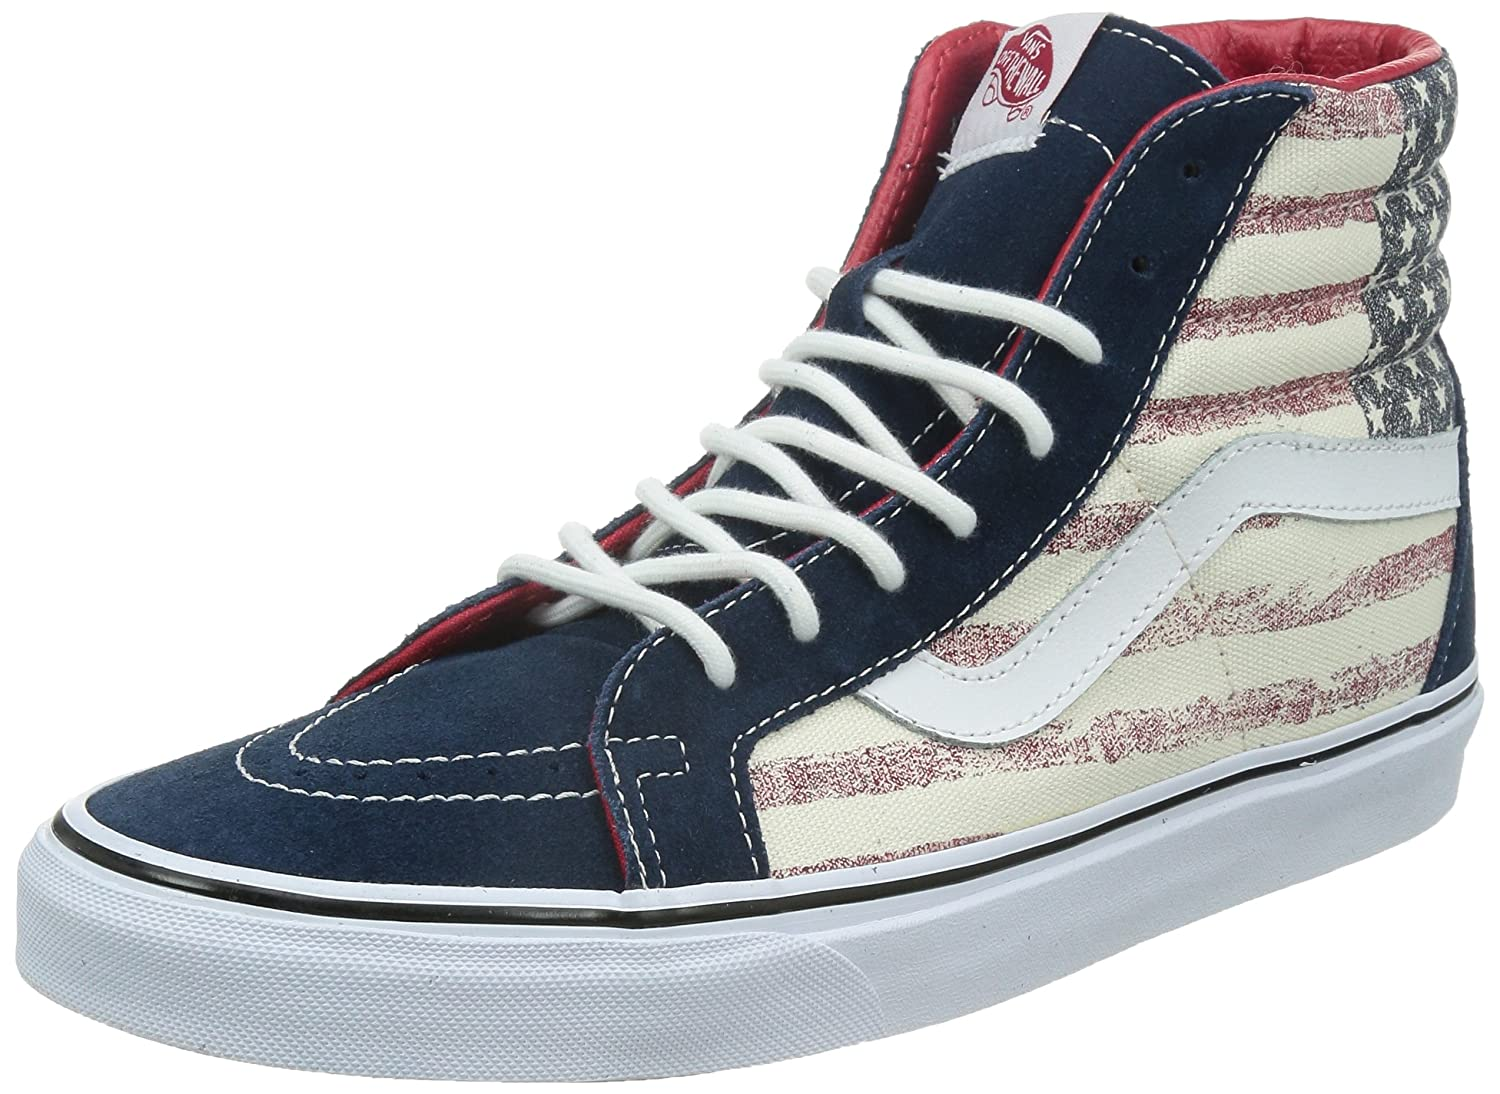 VANS MENS SK8 HI REISSUE LEATHER SHOES B00RPMW4X2 8.5 D(M) US / 10 B(M) US|Dress/Blues